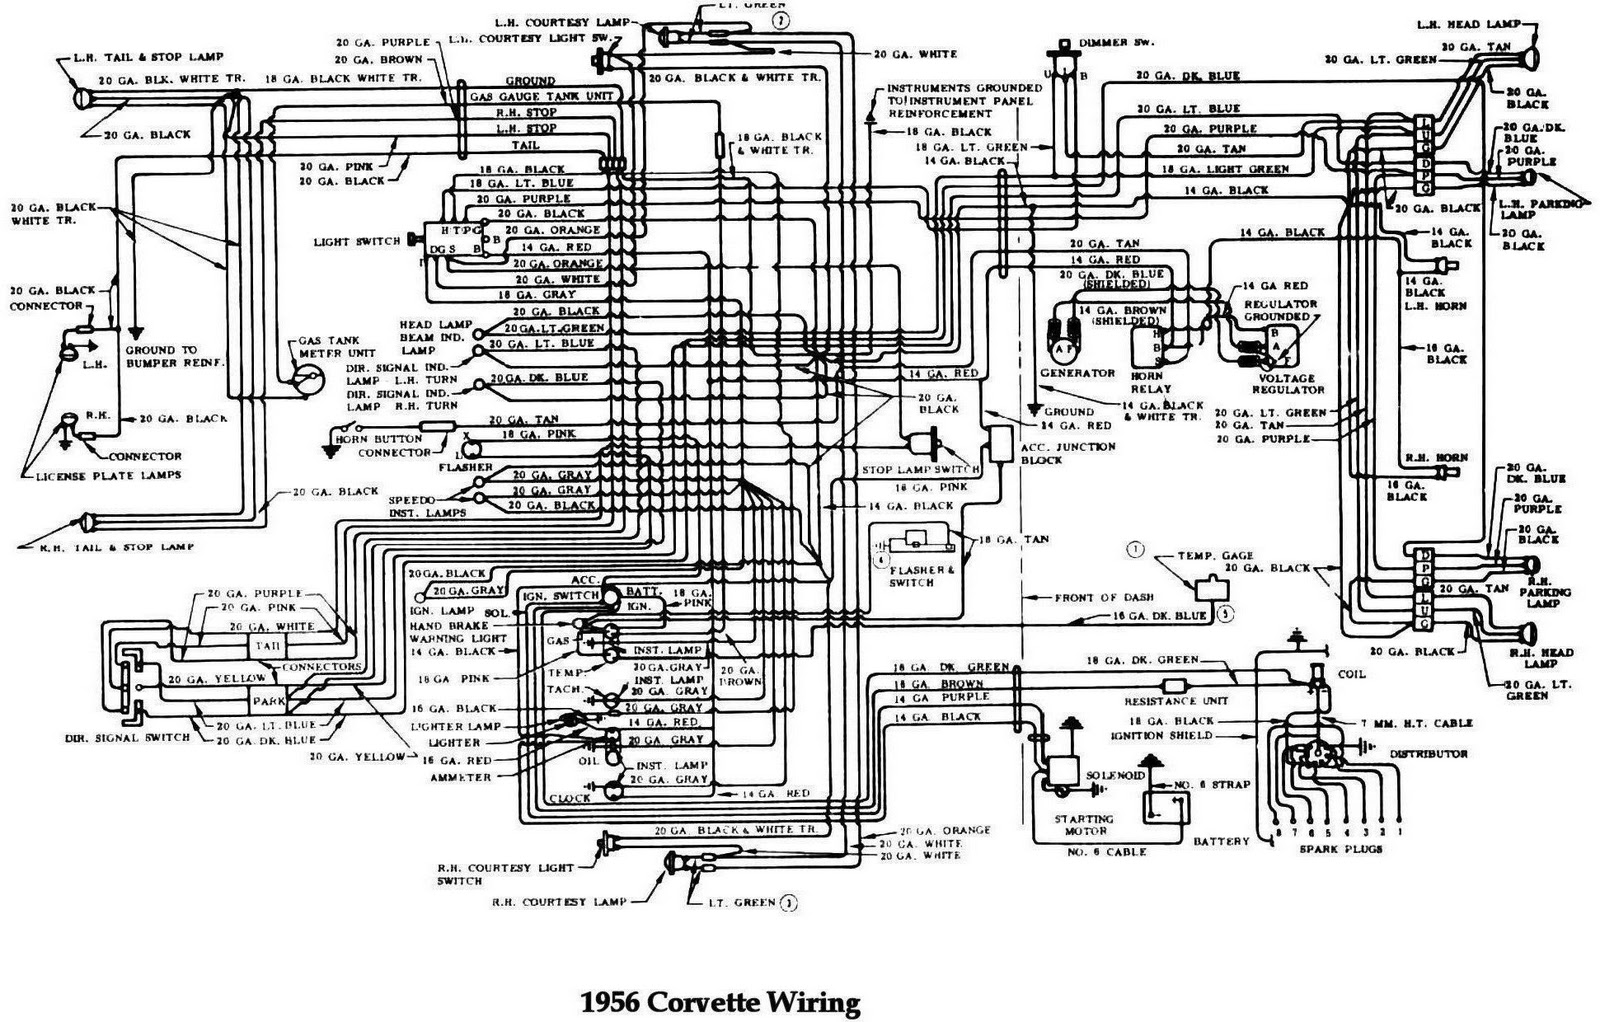 1956 chevrolet corvette wiring diagram | all about wiring ... 1957 corvette wiring diagram free picture schematic 1966 corvette wiring diagram free #11